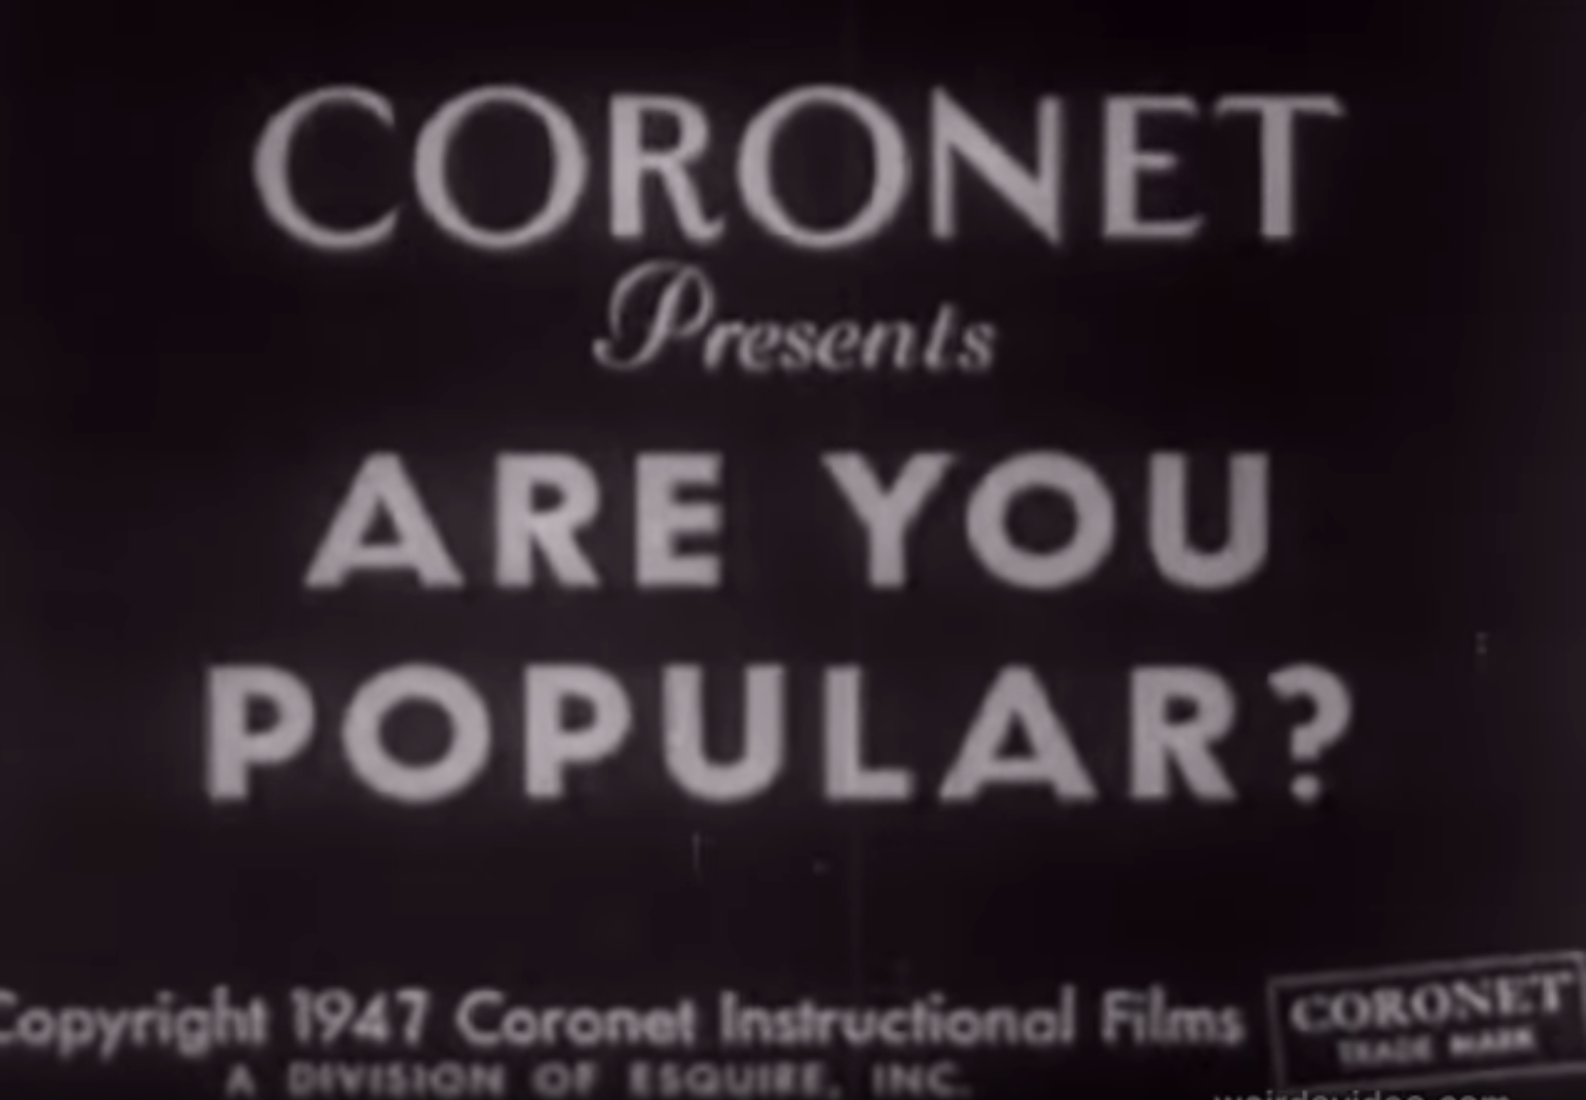 Are You Popular? - 1947